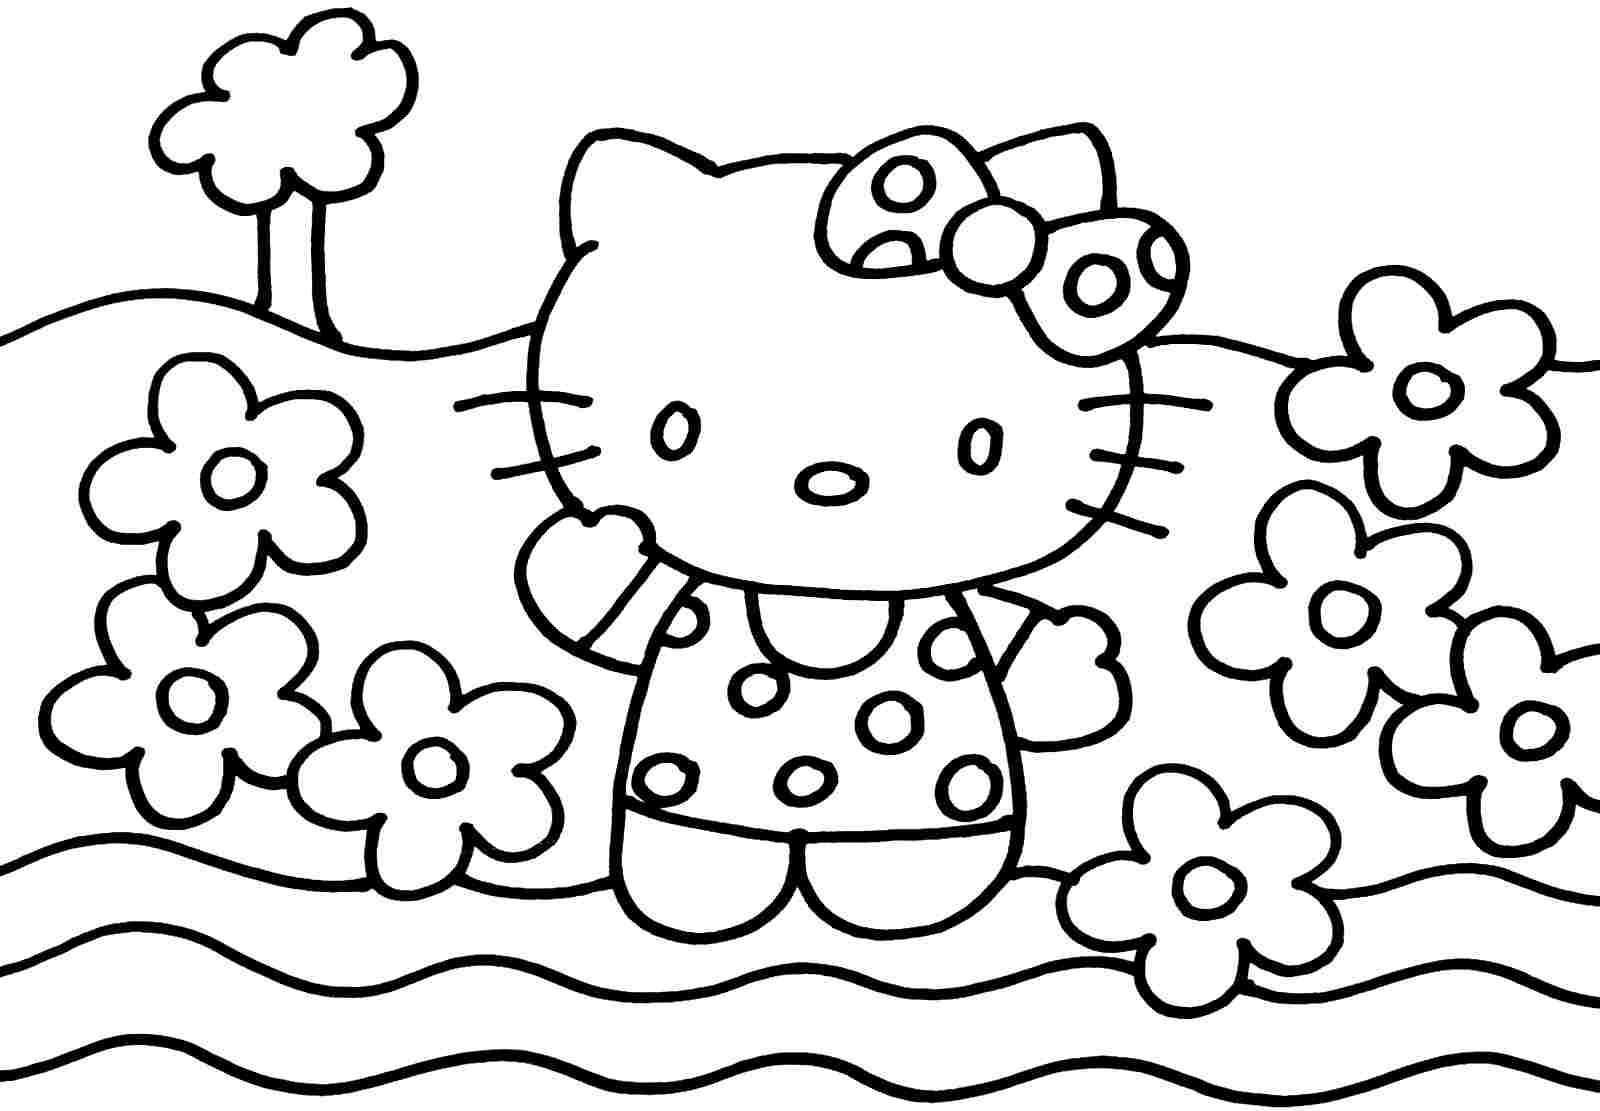 Hello Kitty Printable Coloring Pages Gamz Download Of Proven Coloring Pages to Print Hello Kitty 2895 Unknown Printable